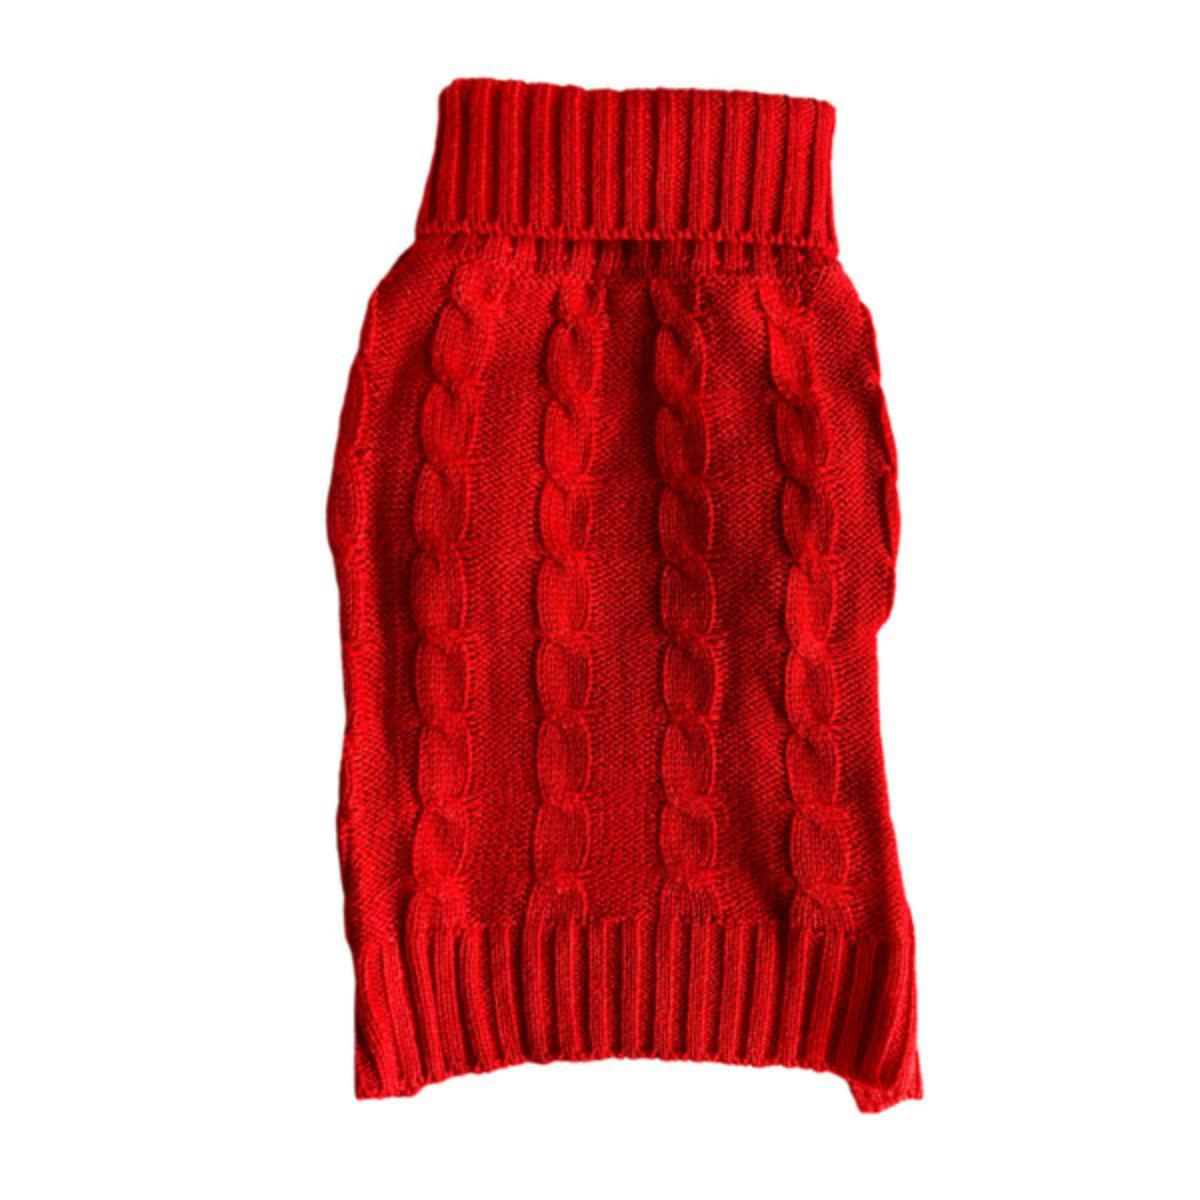 Casual Canine Cable Knit Dog Sweater - Holiday Red